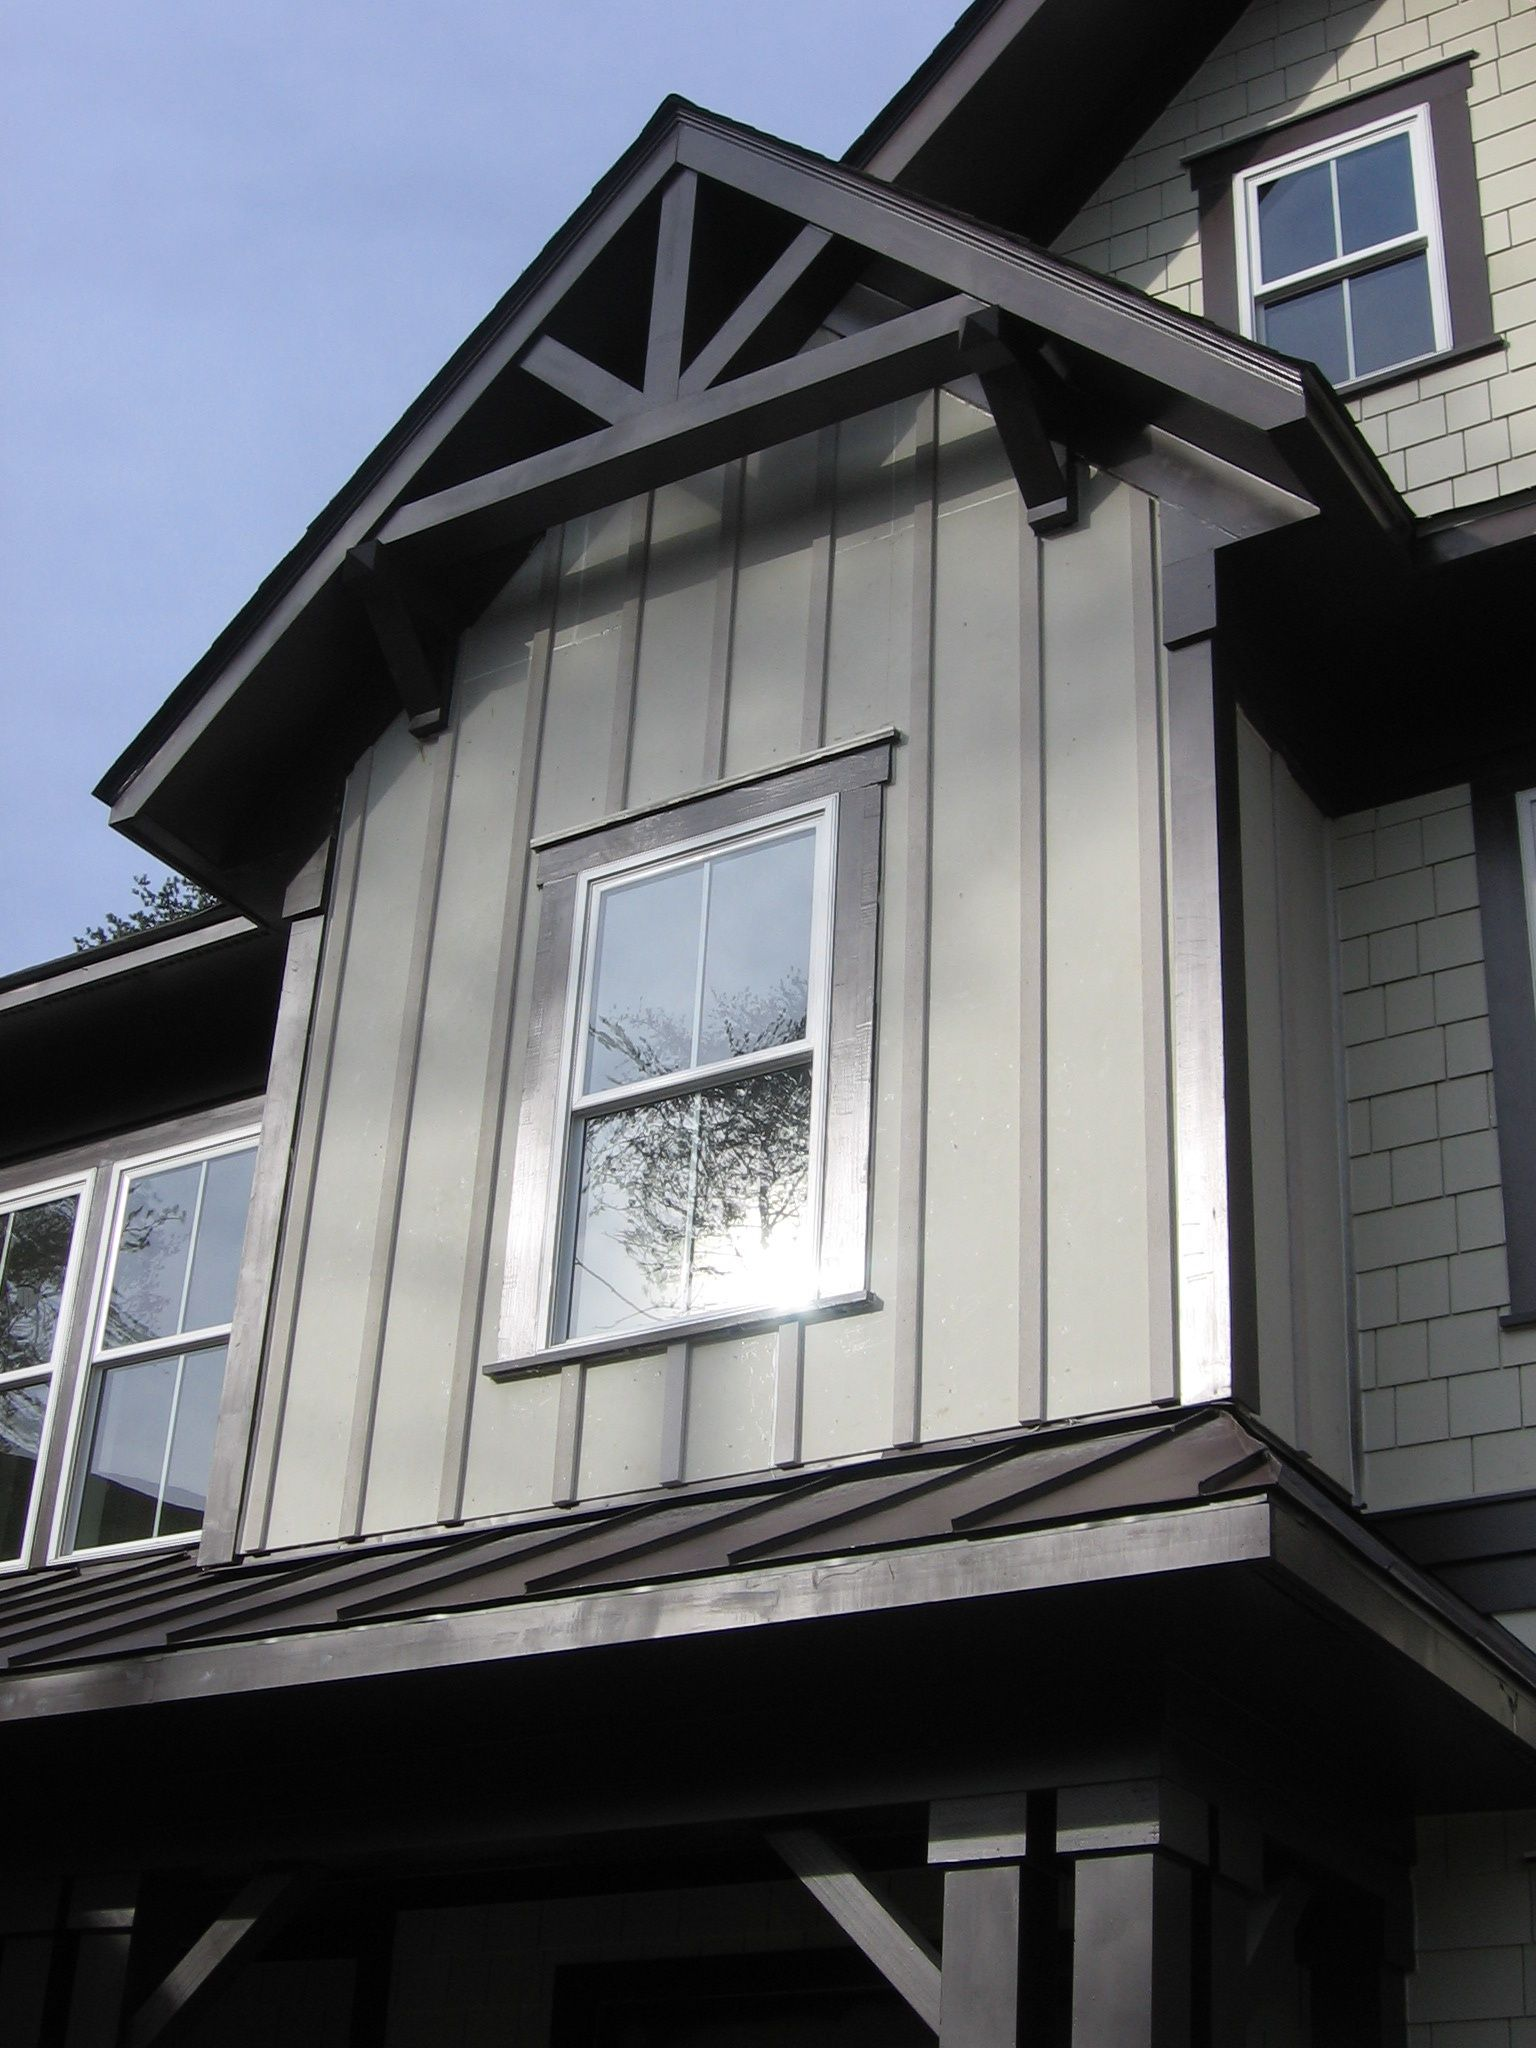 James Hardie Introduces Hardietrim Batten Strips For A More Sustainable Board And Batten Design Lake Houses Exterior House Exterior Exterior Siding